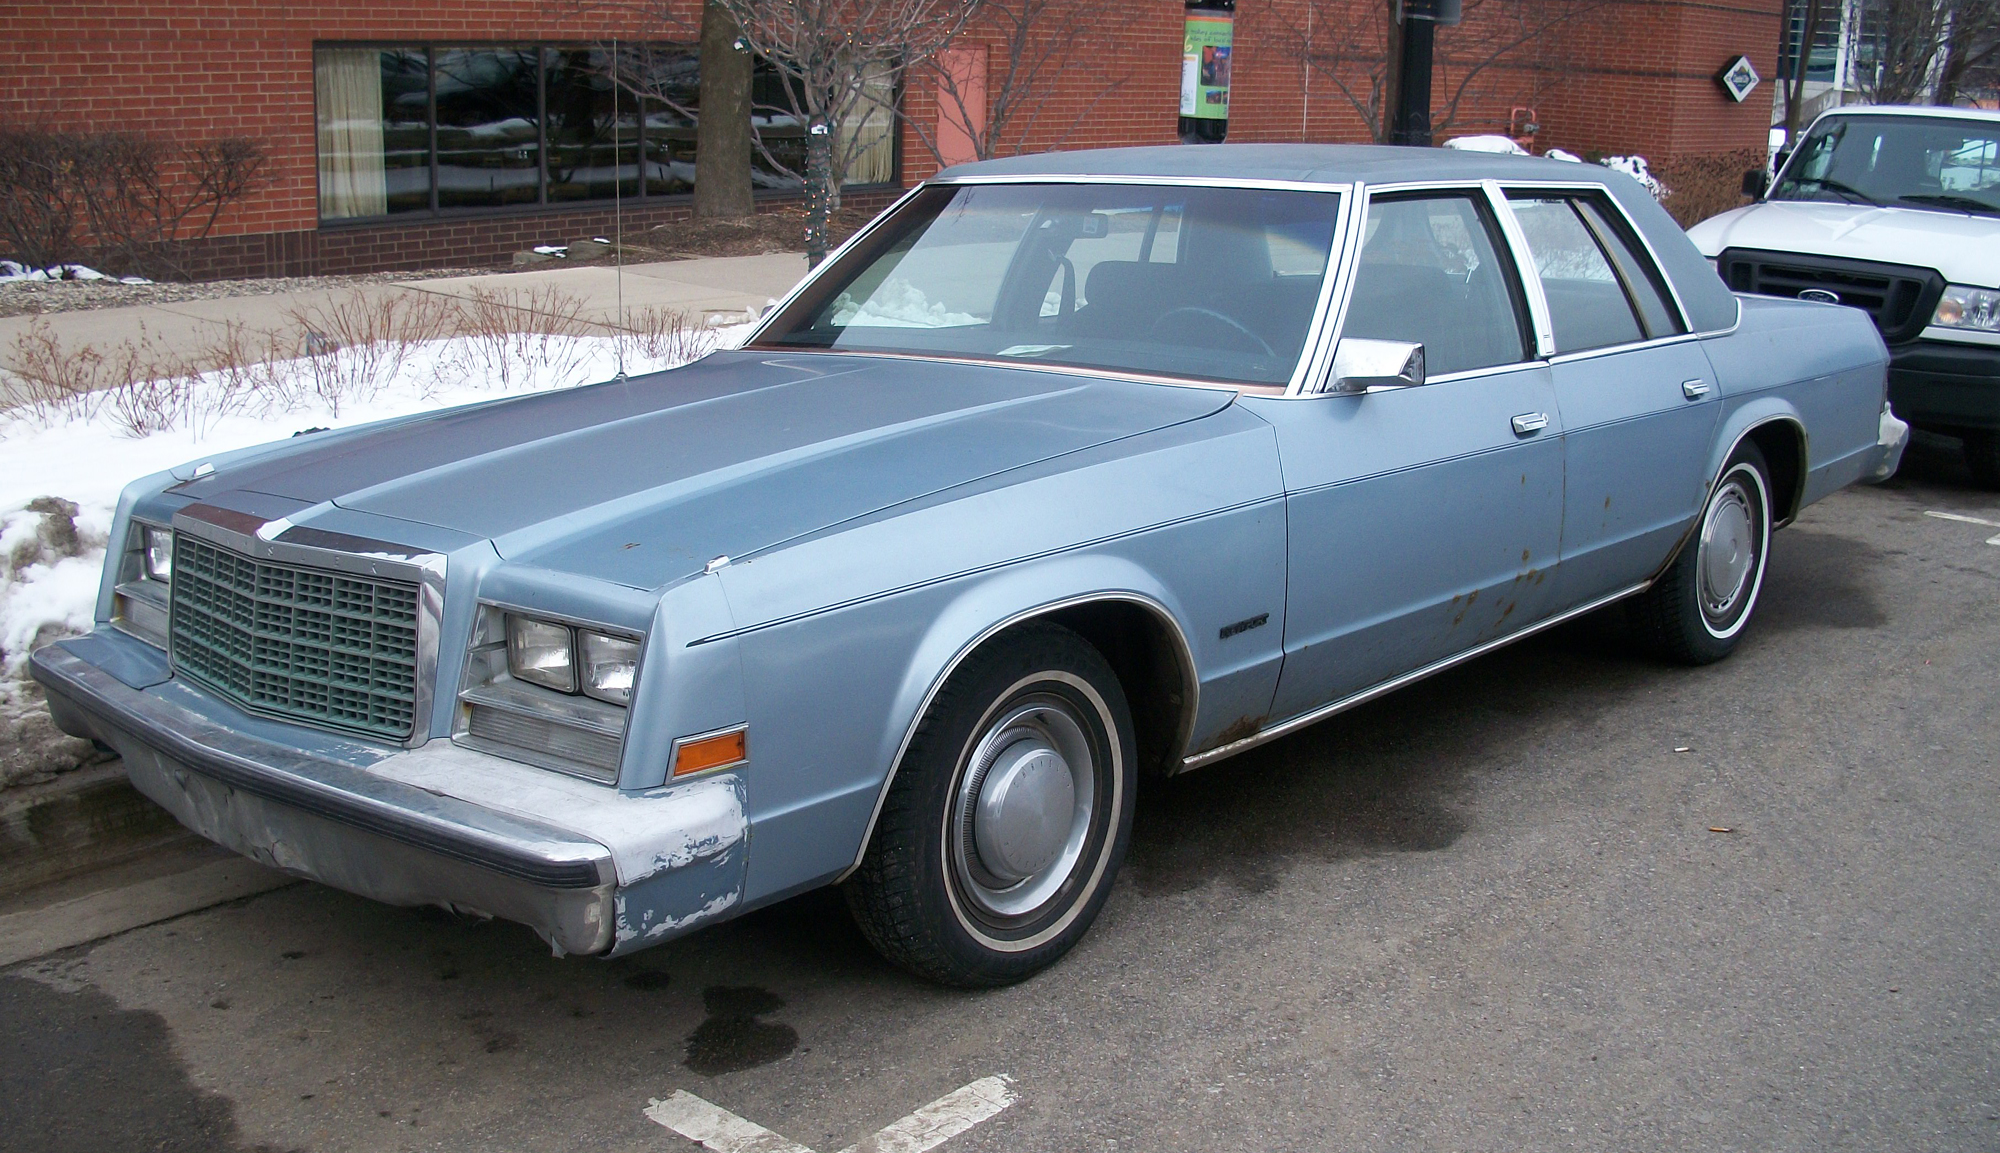 1981 Chrysler Newport #2